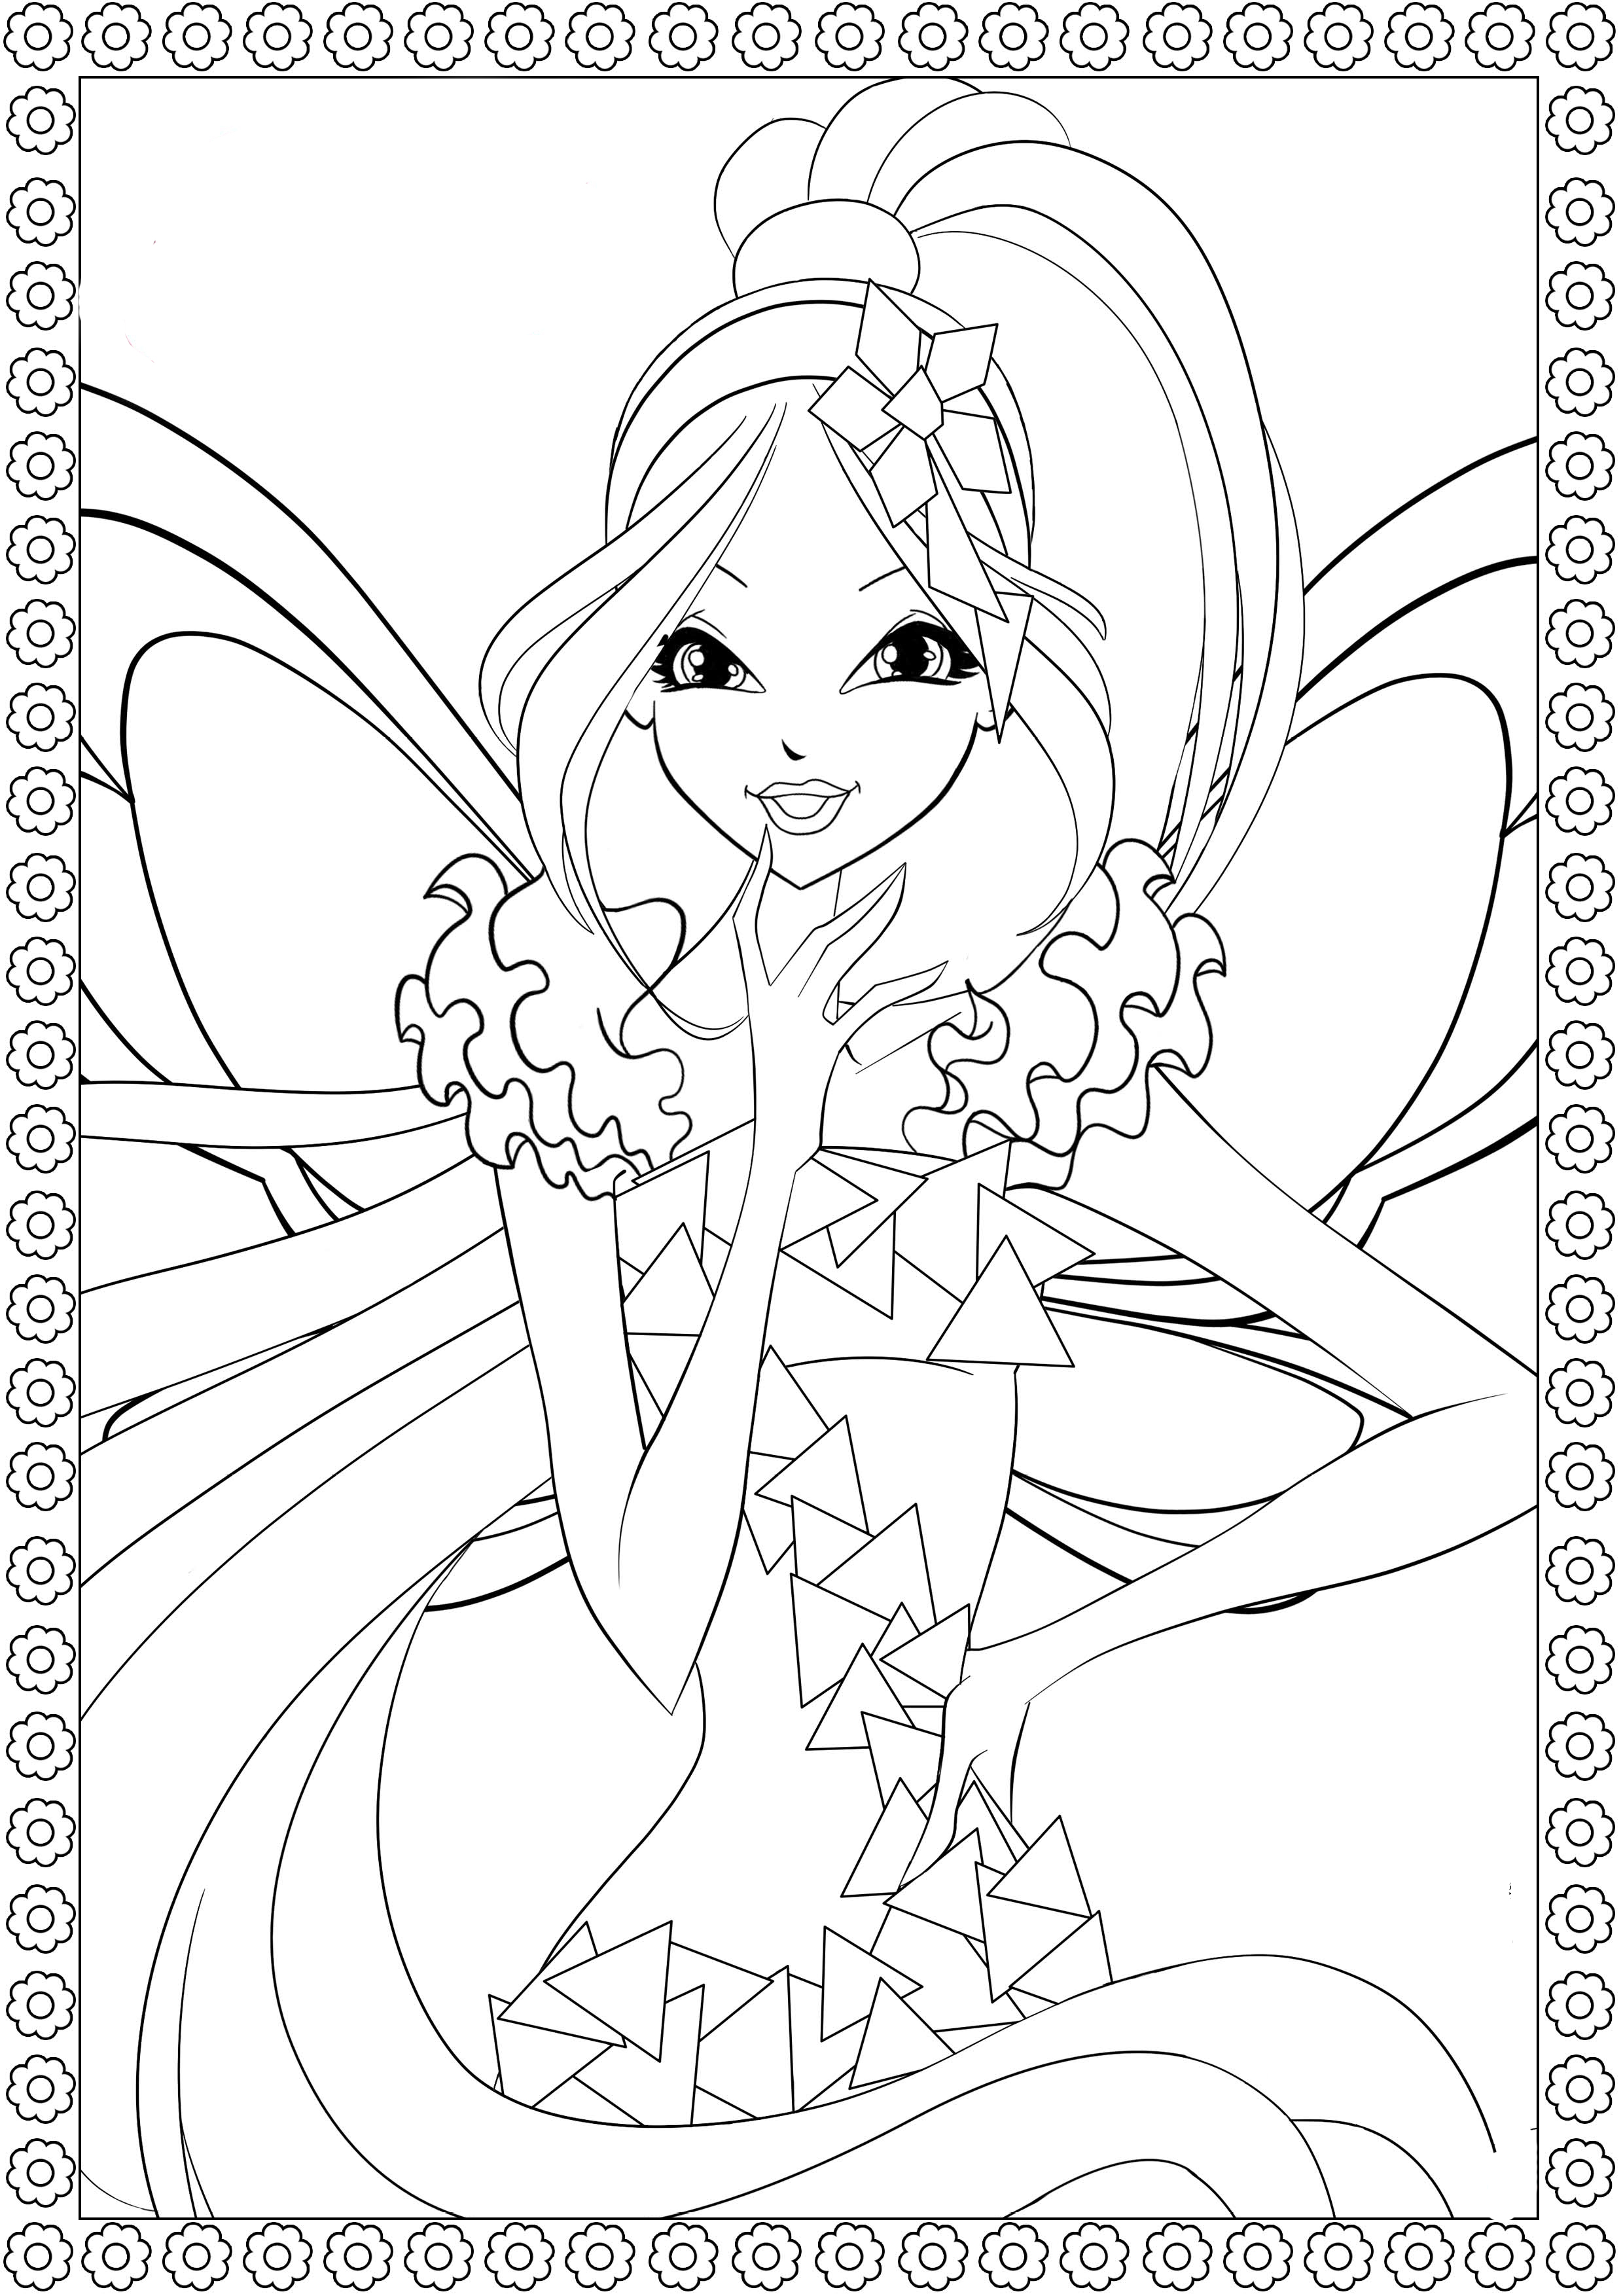 coloring winx club colouring pages the winx club fan art 23364740 fanpop club coloring winx